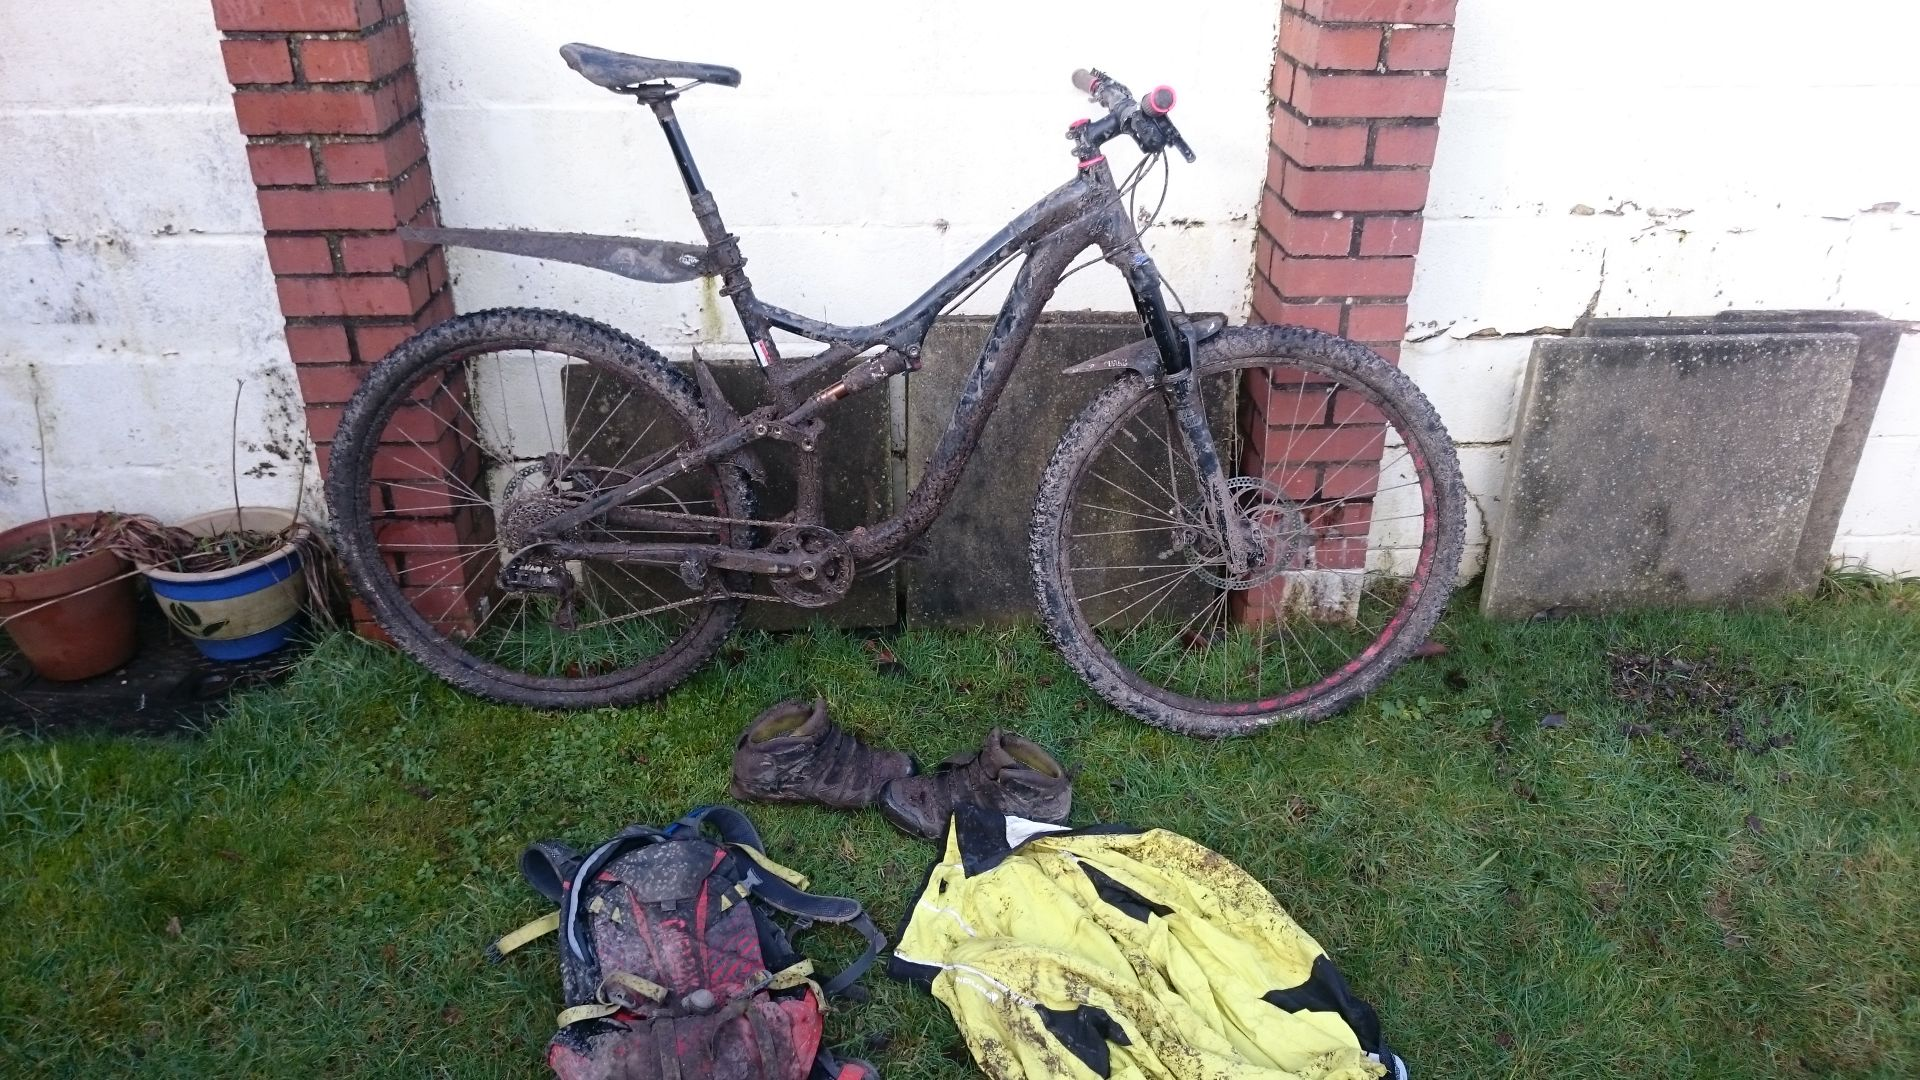 This is what my gear looked like after a ride last week